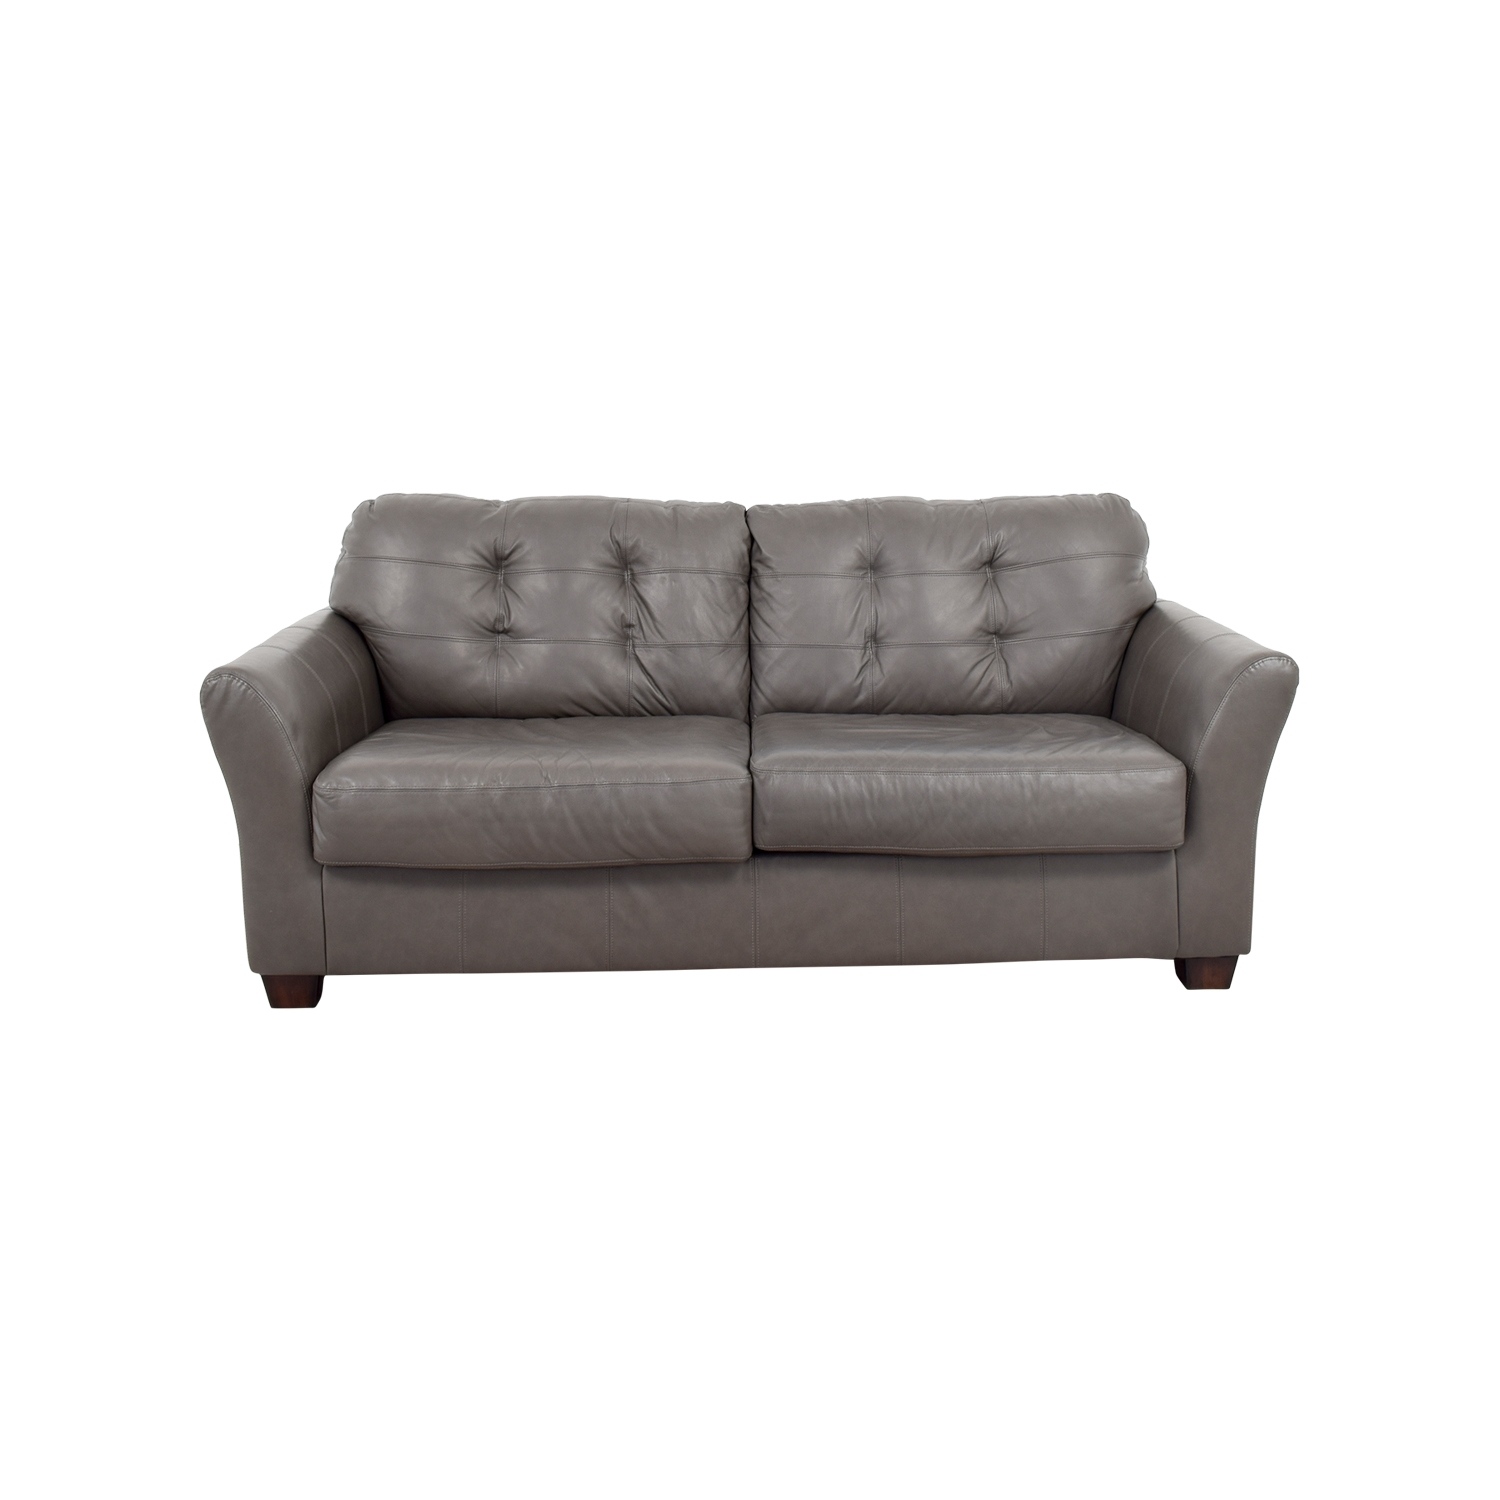 66% Off - Ashley Furniture Ashley Furniture Gray Tufted Sofa / Sofas with regard to Ashley Tufted Sofas (Image 1 of 10)